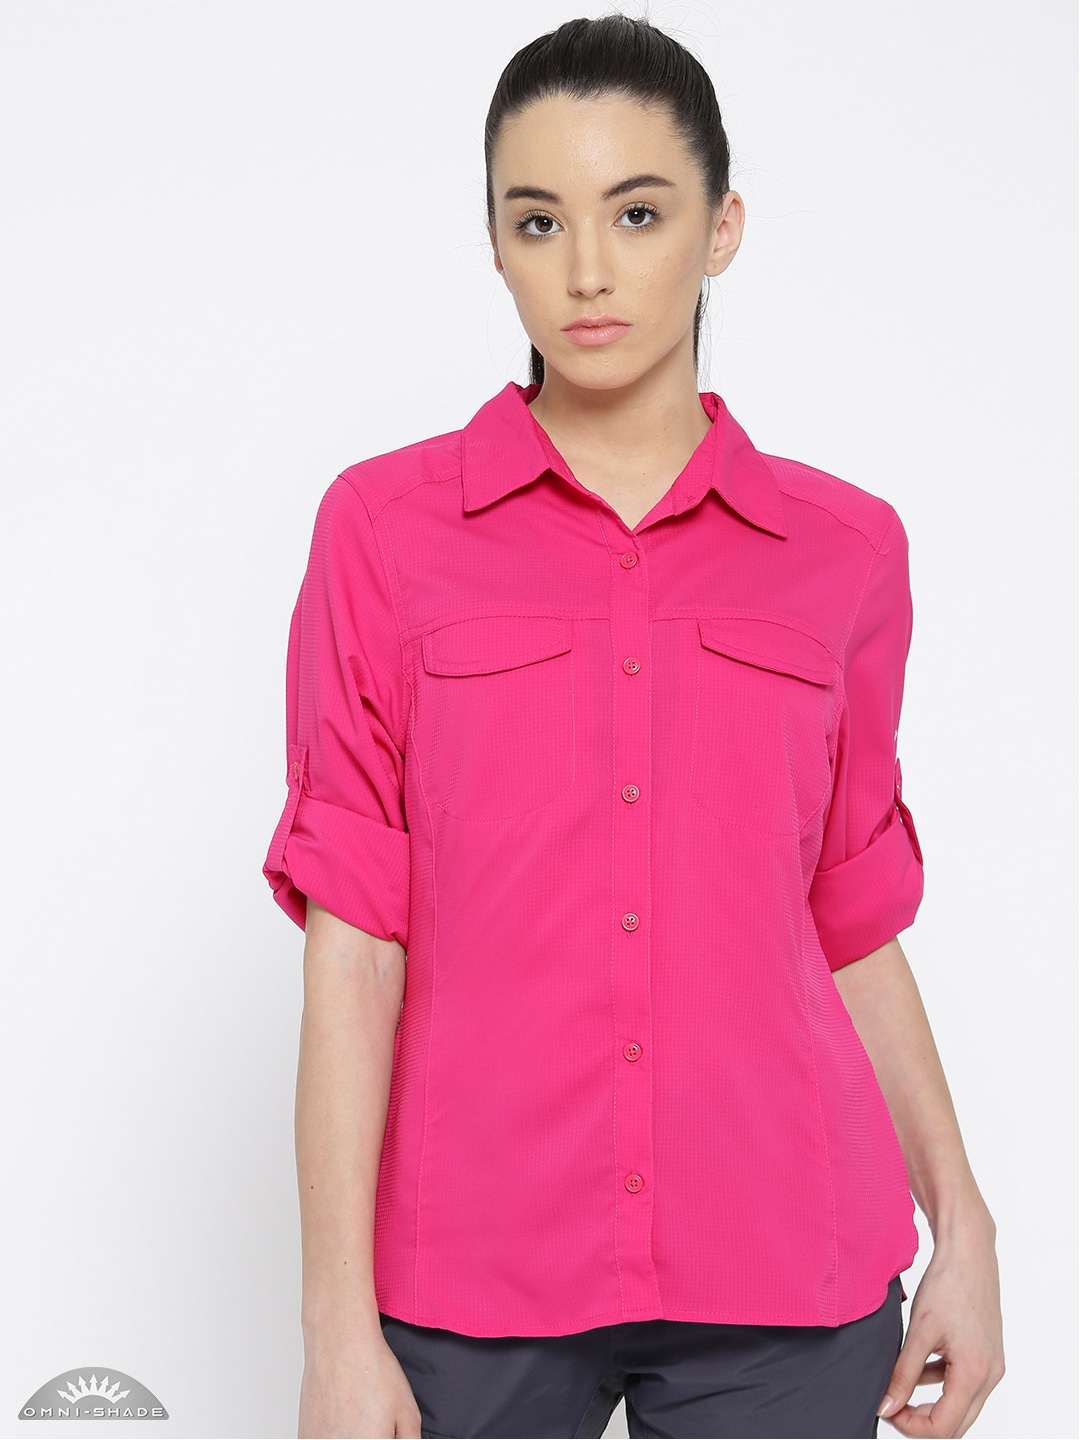 a315166e129 Columbia Shirts - Buy Columbia Shirts online in India